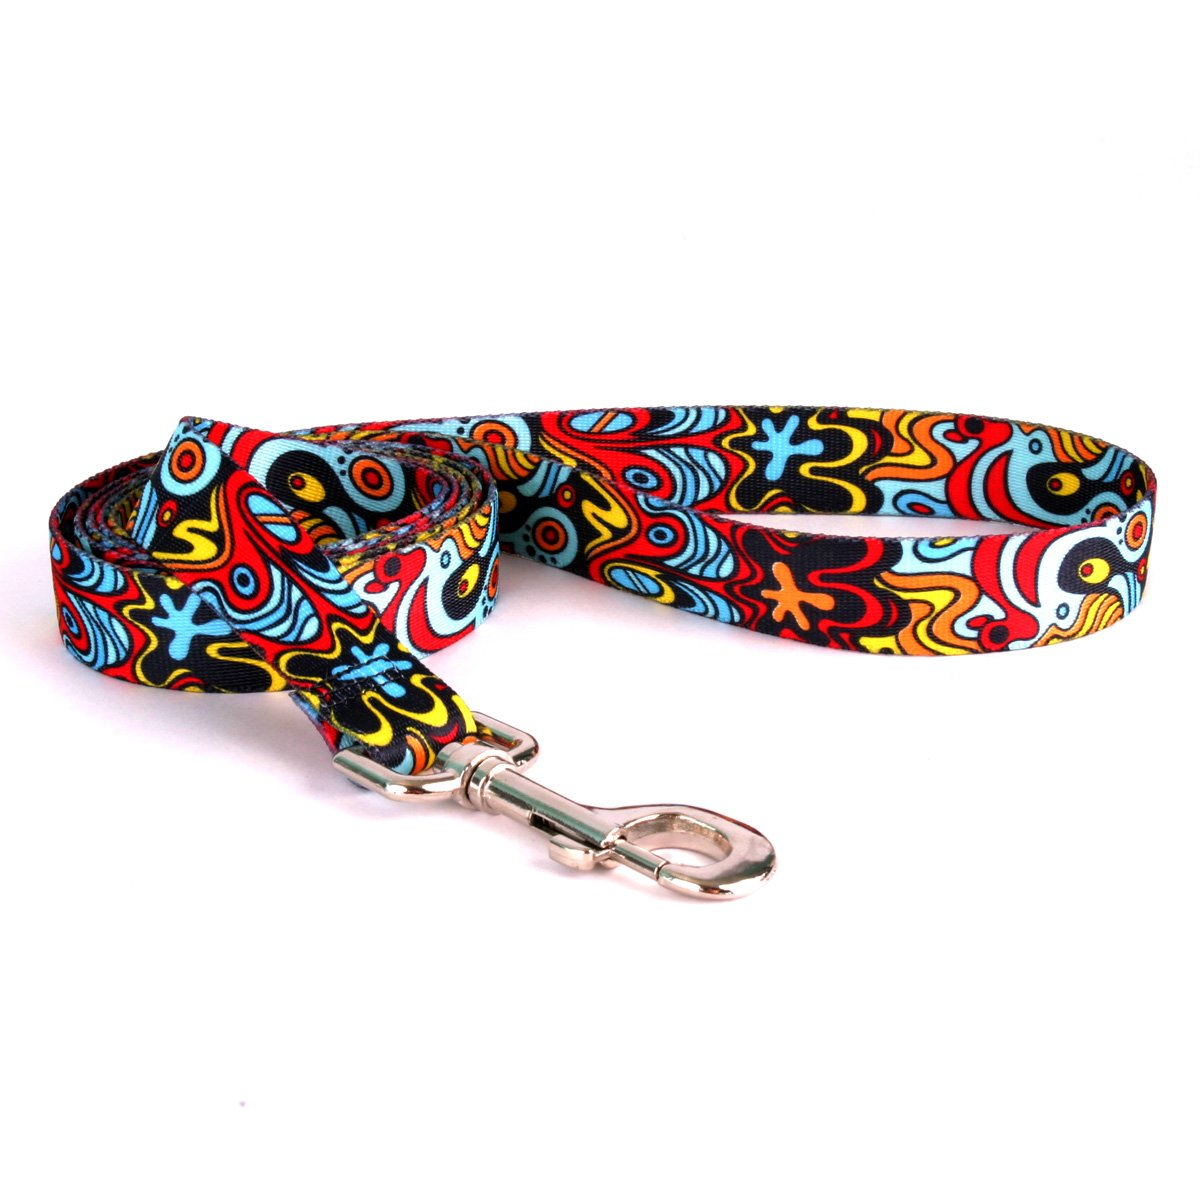 Yellow Dog Design Abstract Dog Leash 3/4'' Wide and 5' (60'') Long, Small/Medium by Yellow Dog Design